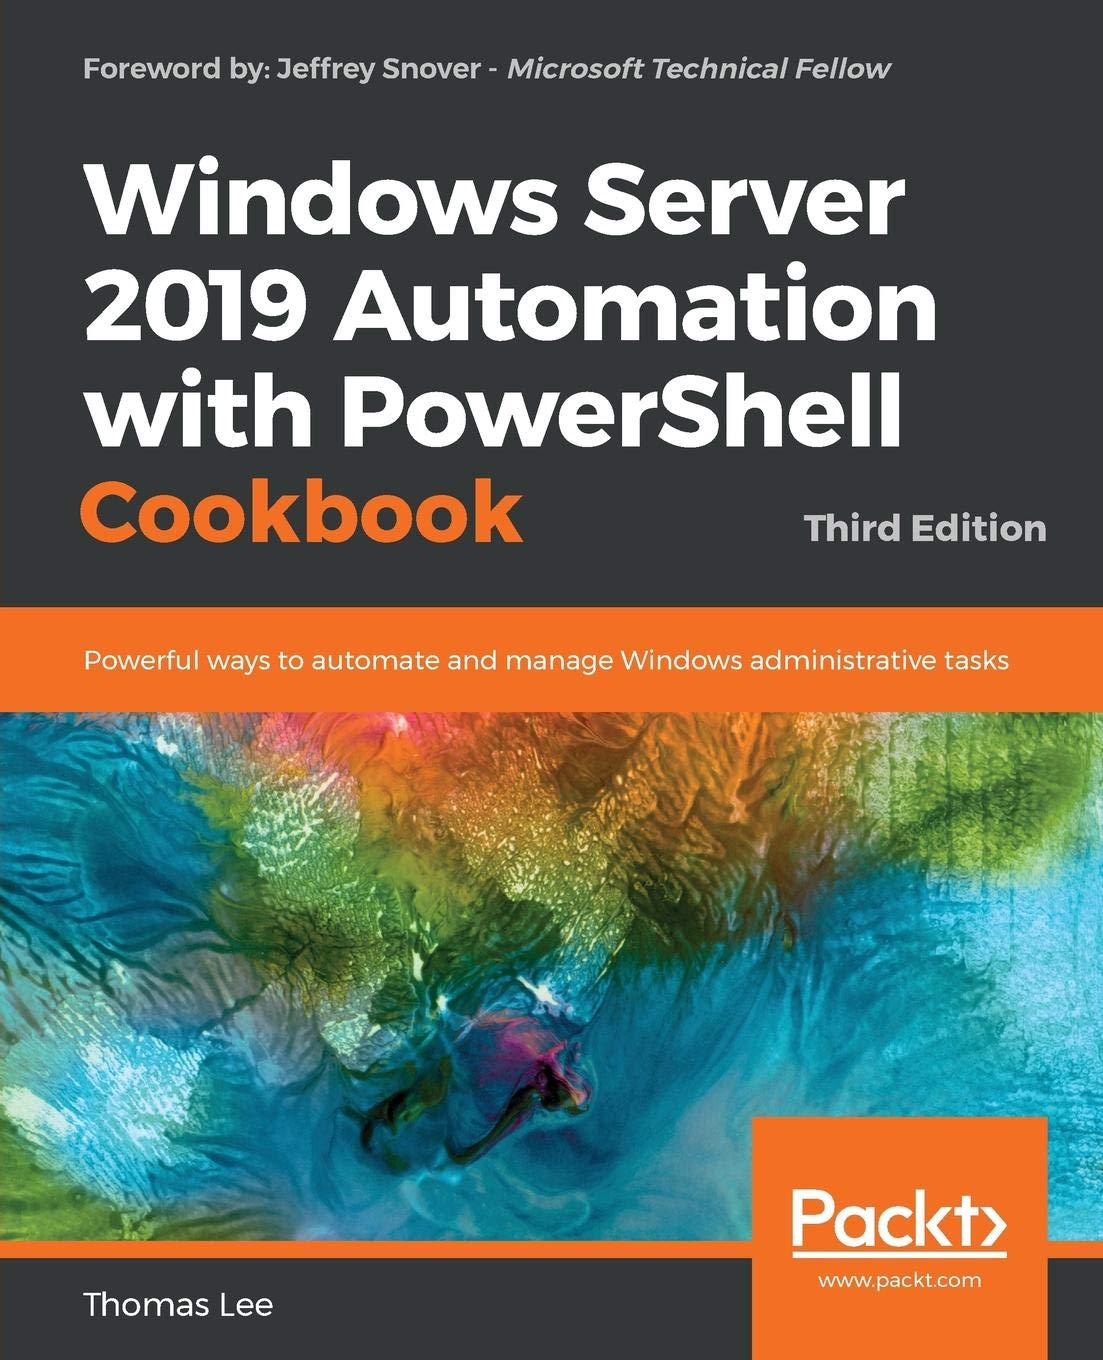 Windows Server 2019 Automation With PowerShell Cookbook  Powerful Ways To Automate And Manage Windows Administrative Tasks 3rd Edition